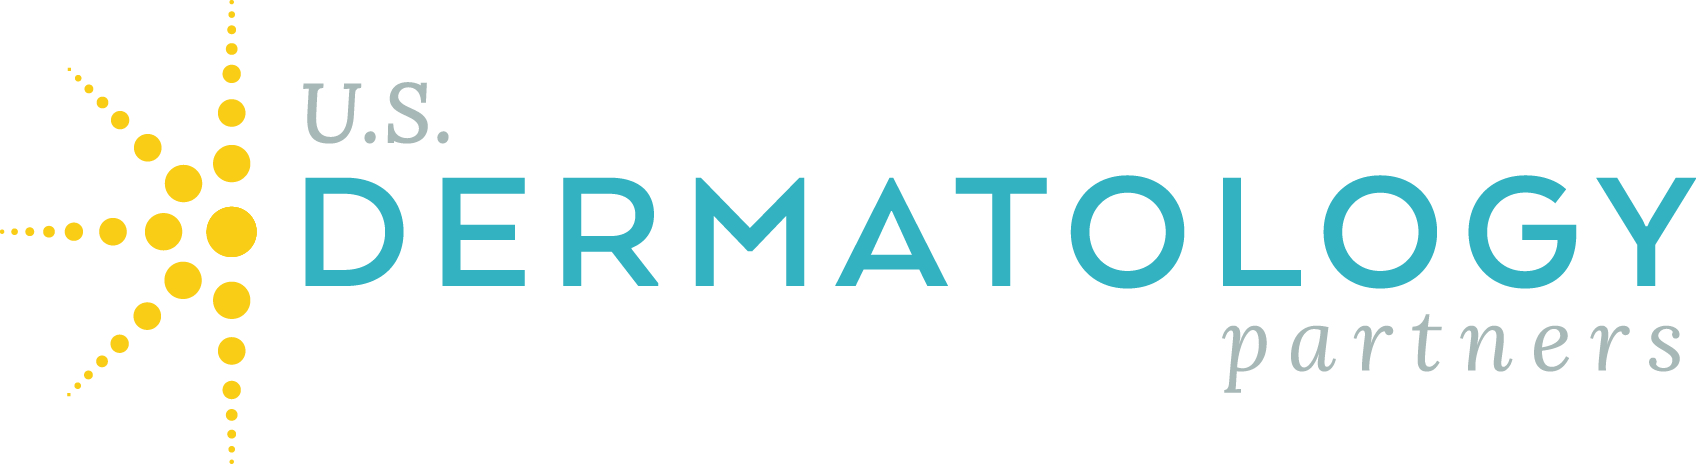 U S Dermatology Partners Announces New Partnership In The